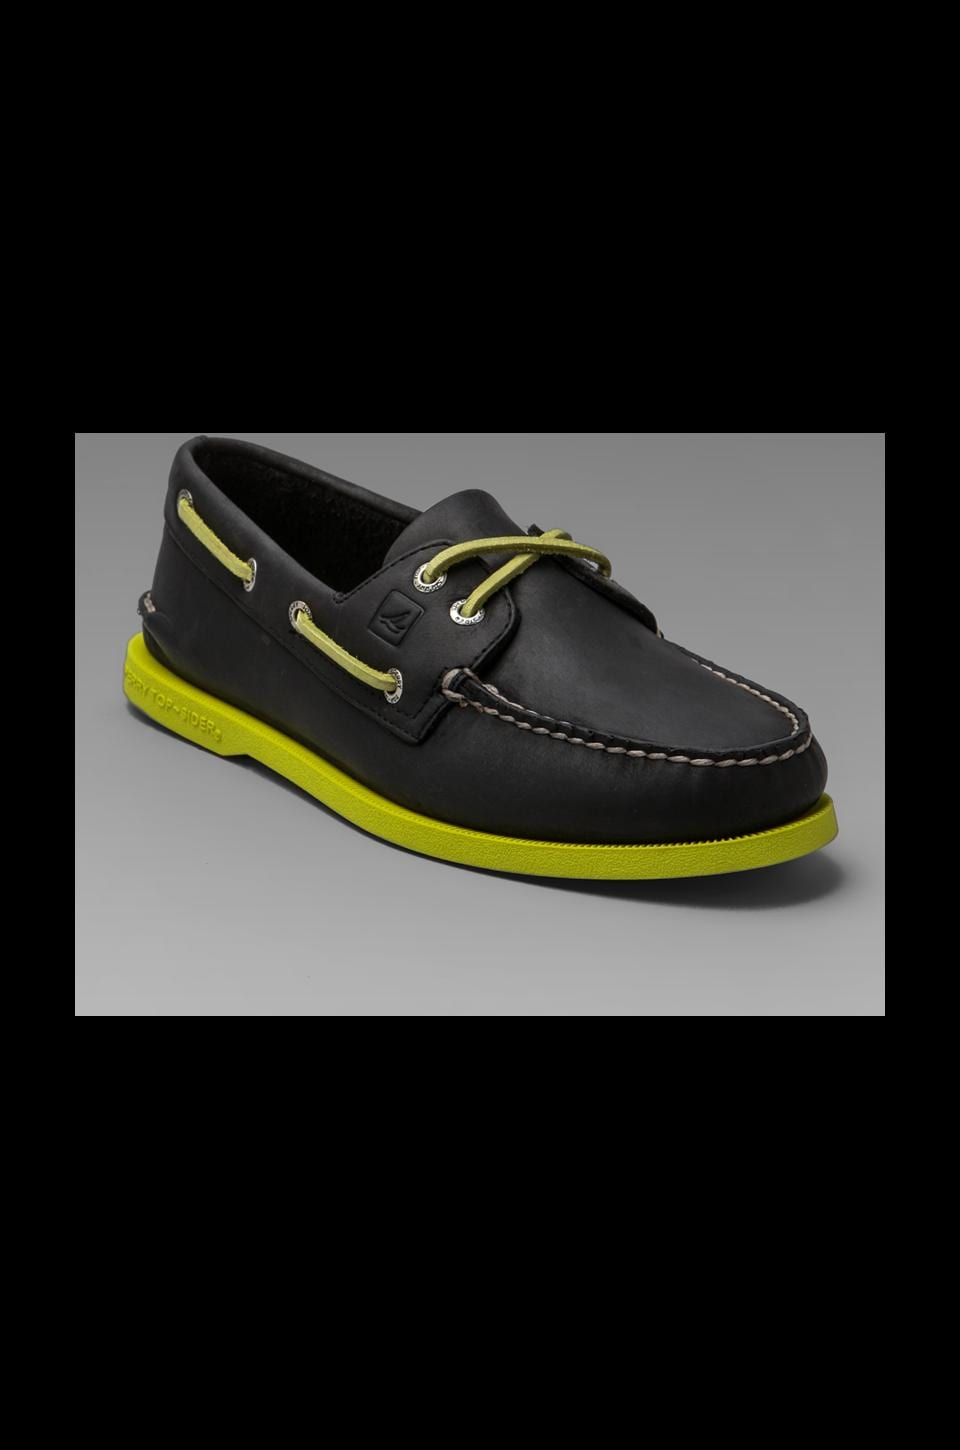 Sperry Top-Sider A/O 2-Eye Neon in Black/Neon Yellow